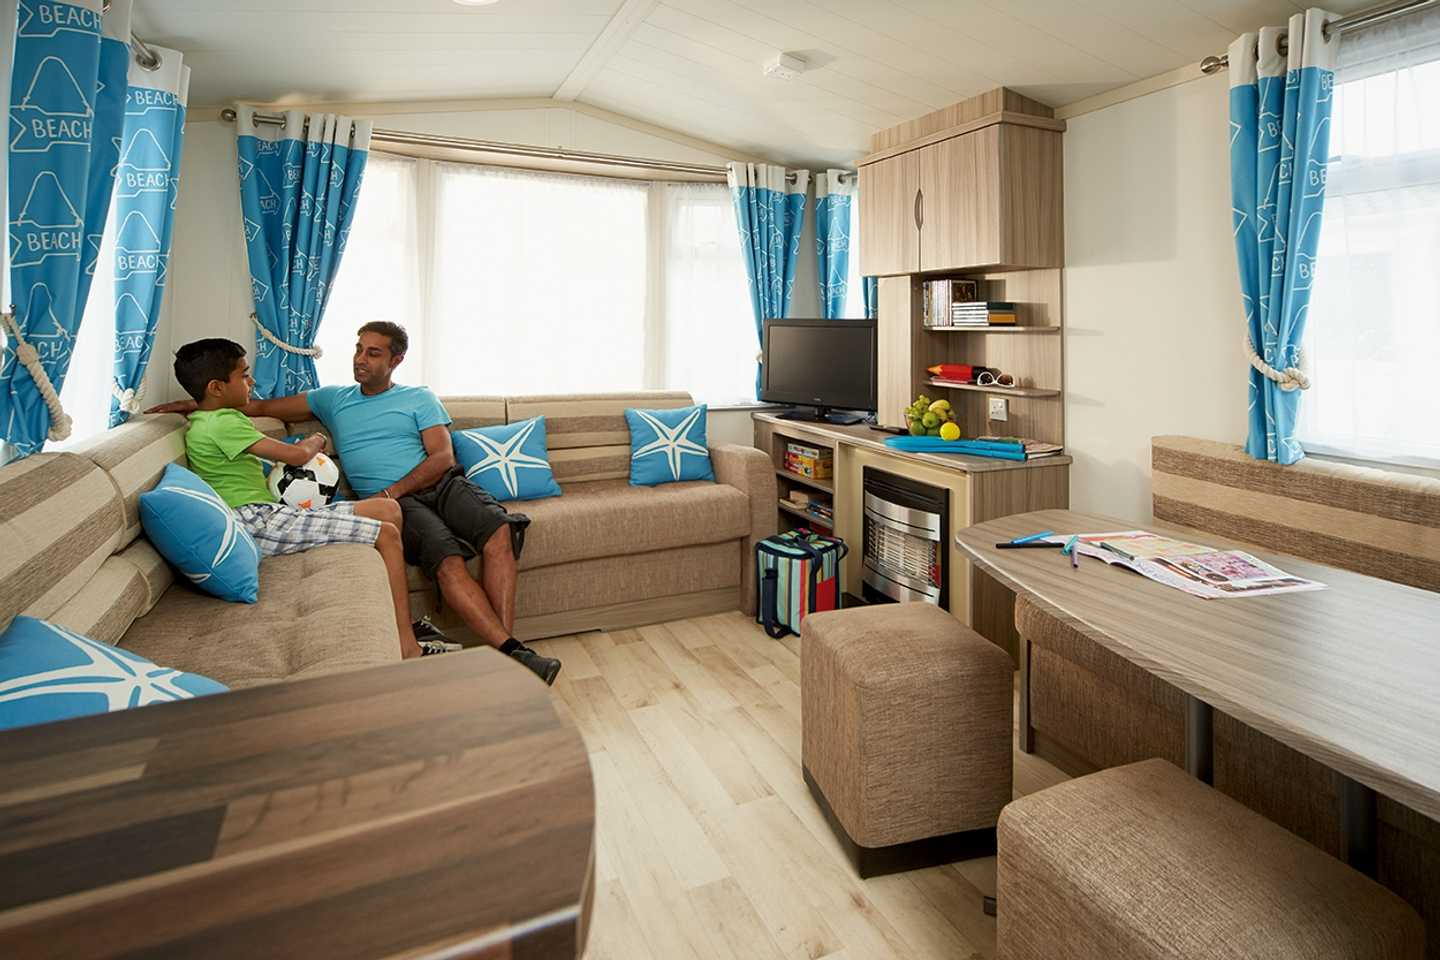 A Standard caravan lounge with a father and son sitting on the sofa talking